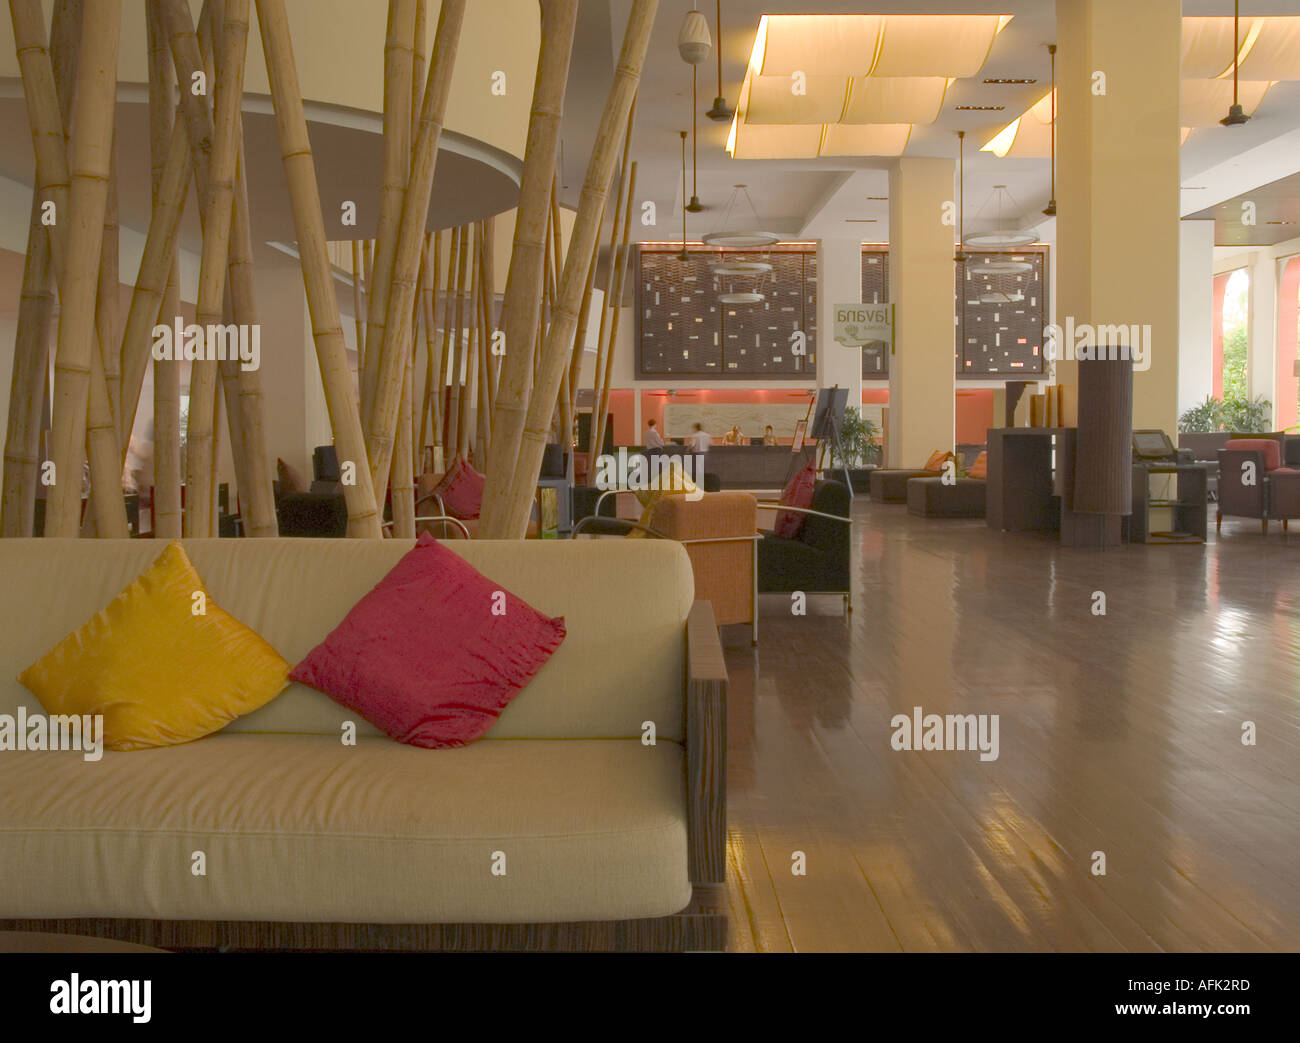 The Bamboo Lounge Stock Photos & The Bamboo Lounge Stock Images ...